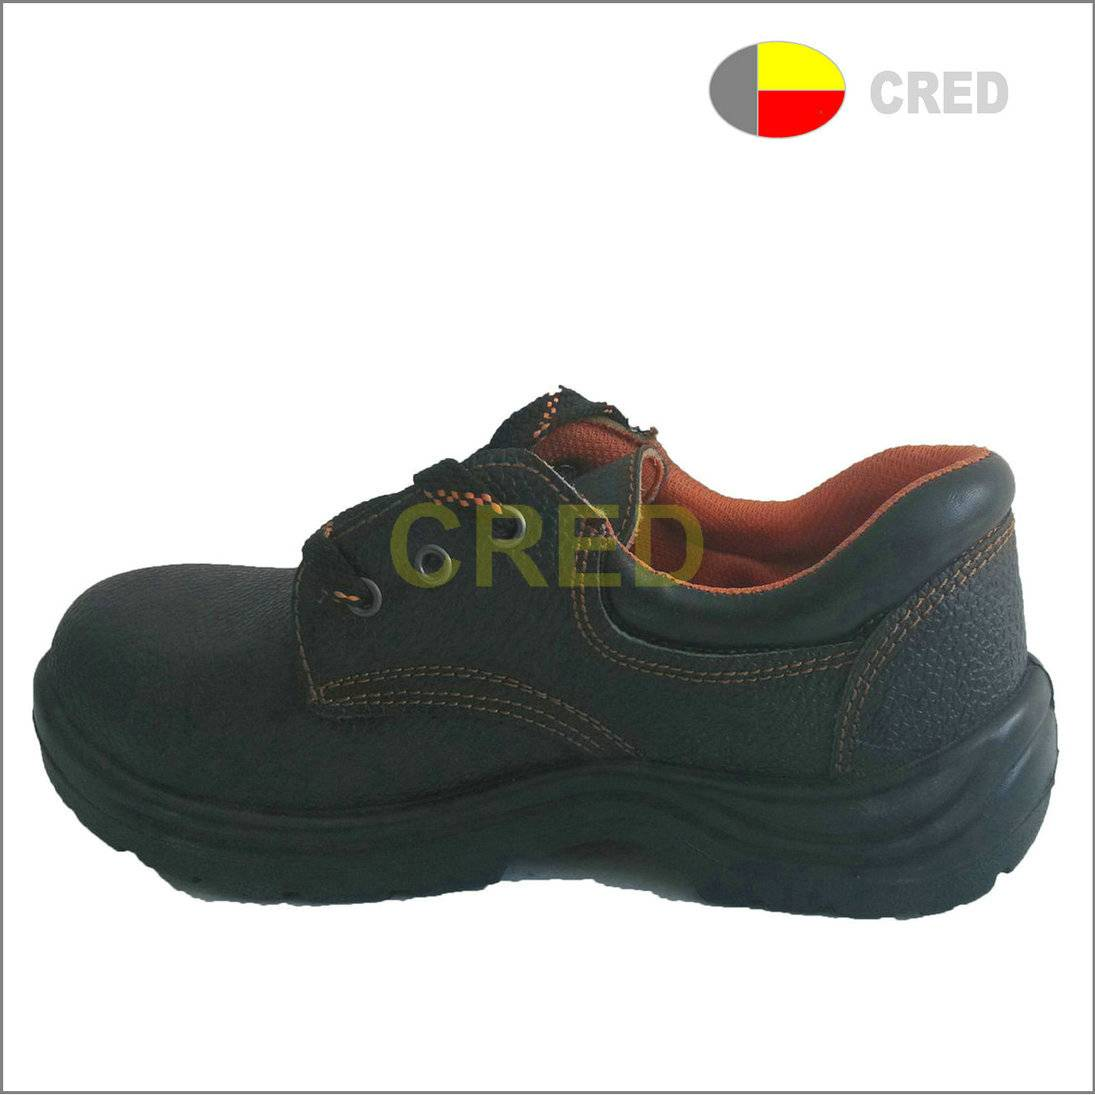 T055 leather  industrial safety shoes